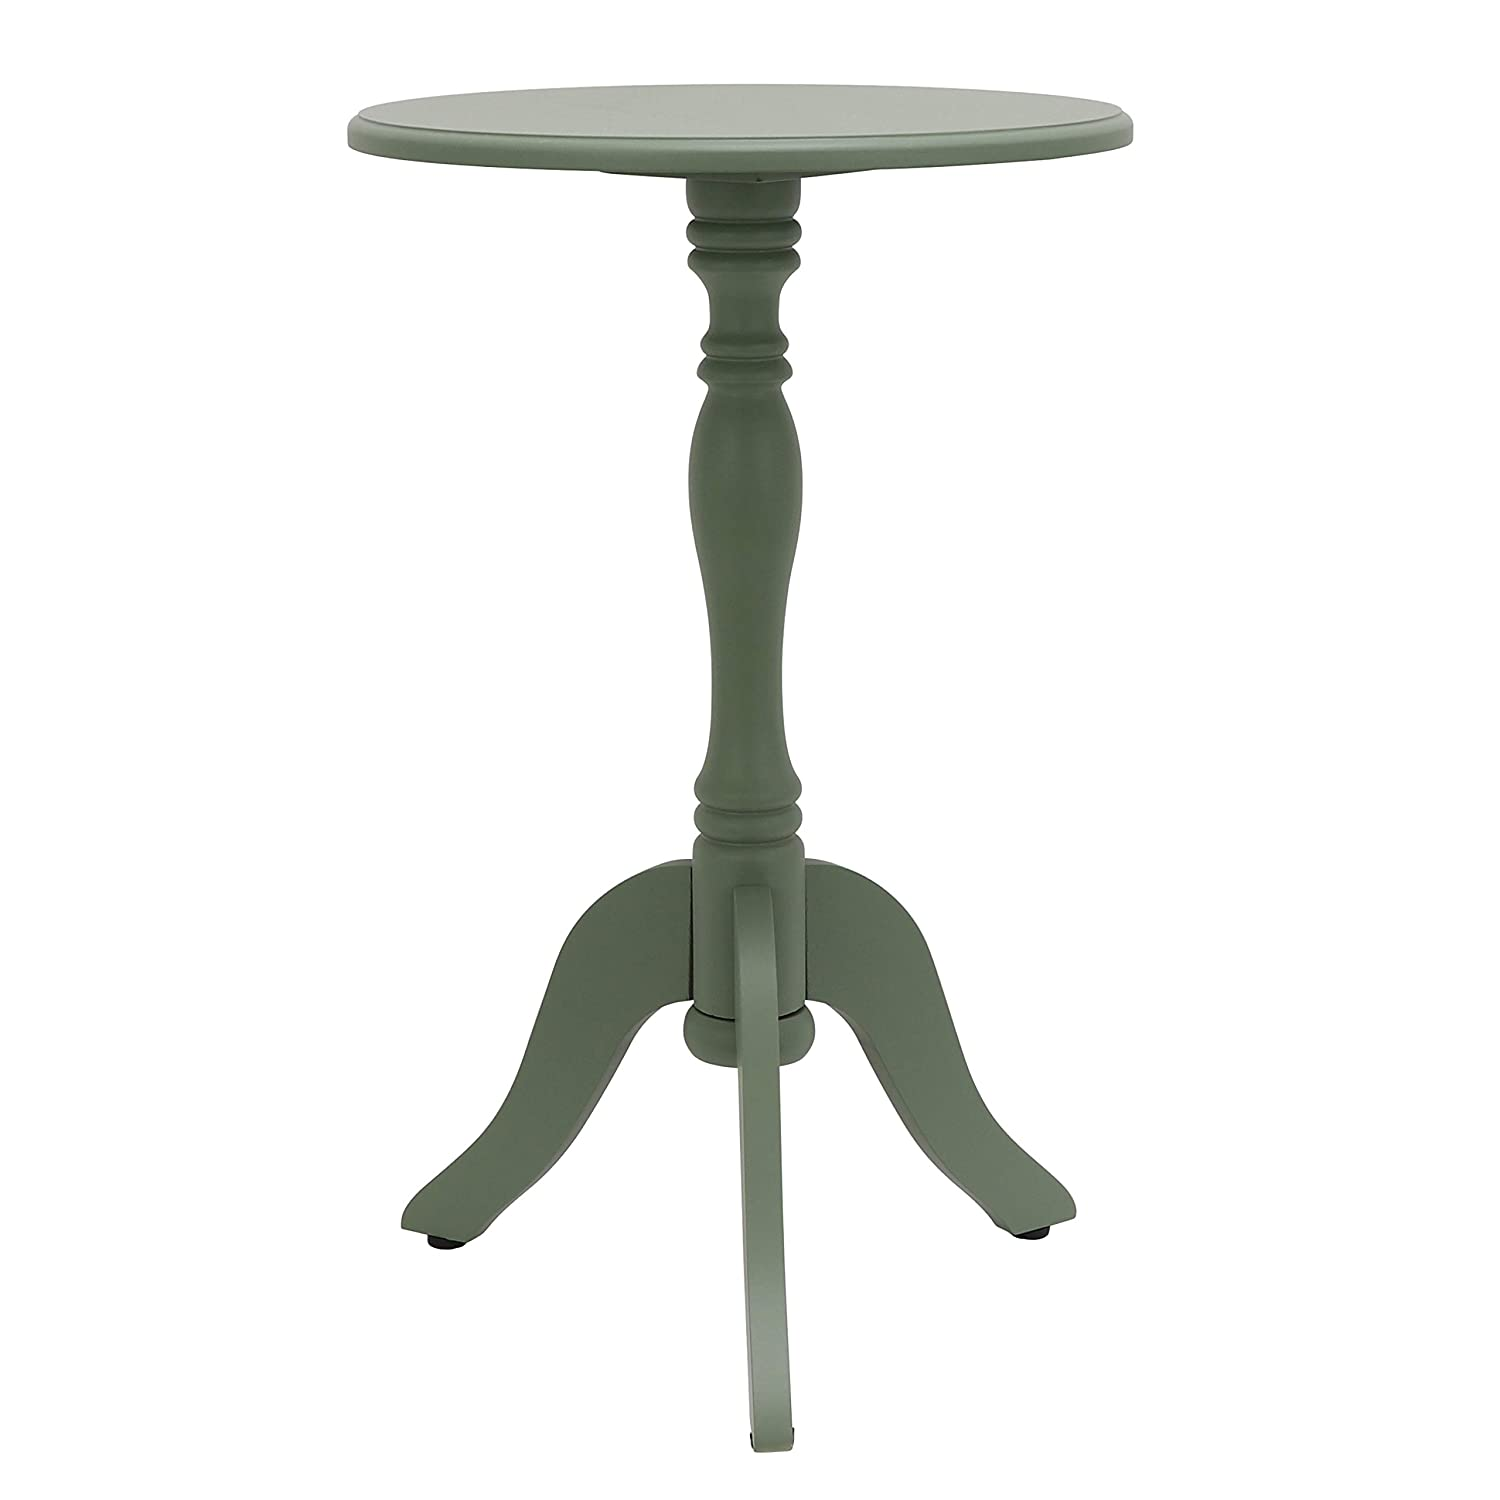 Decor Therapy Side Table, Olive Branch